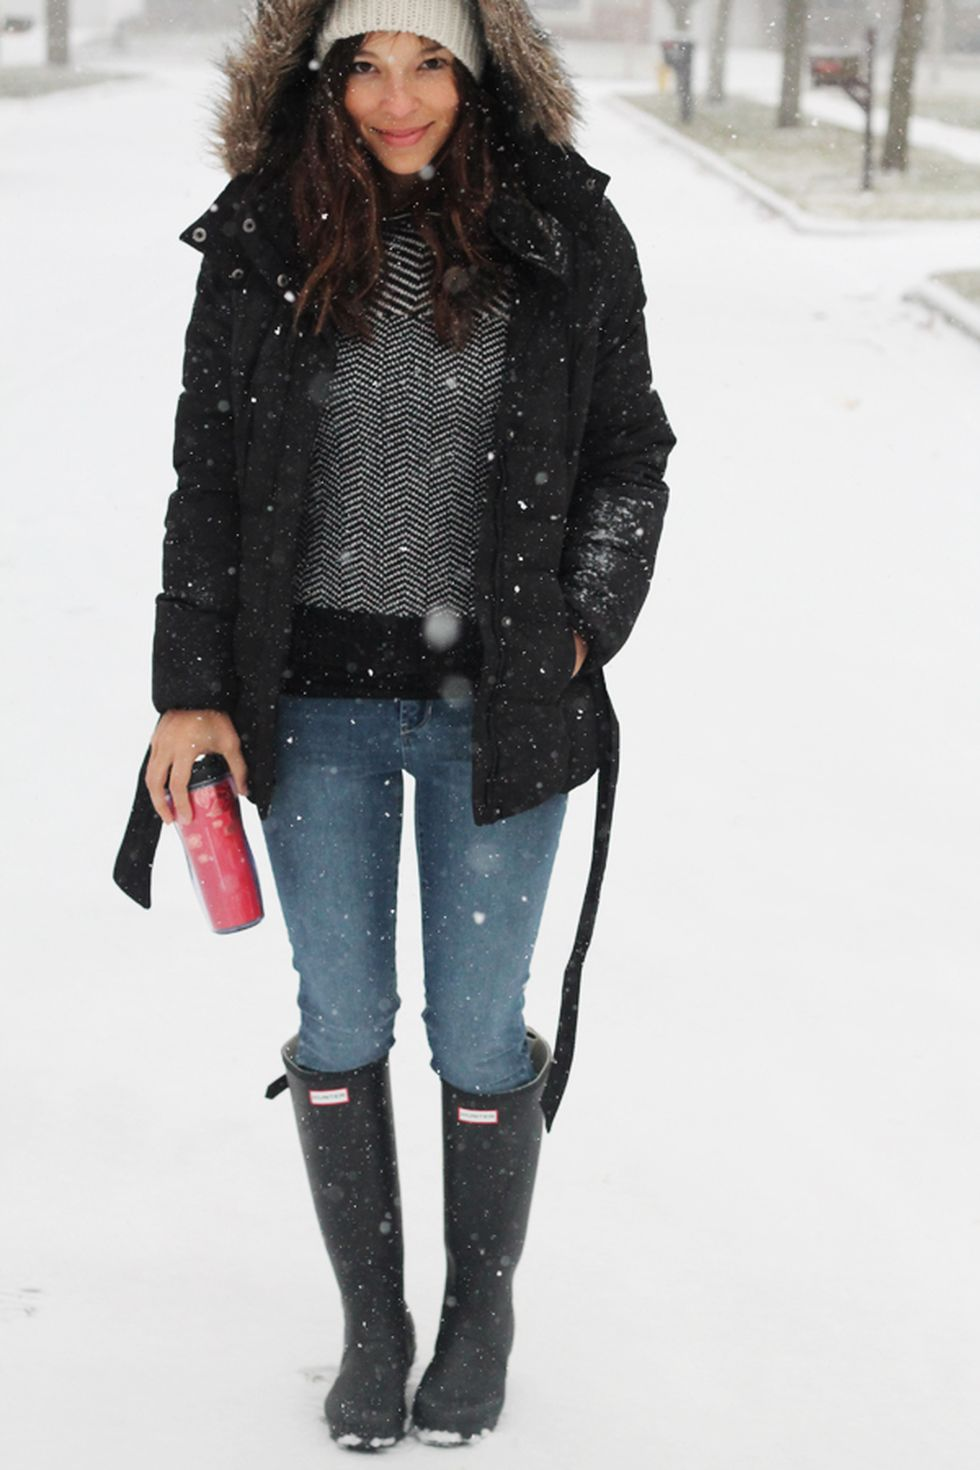 fashionable women snow outfits for this winter 35